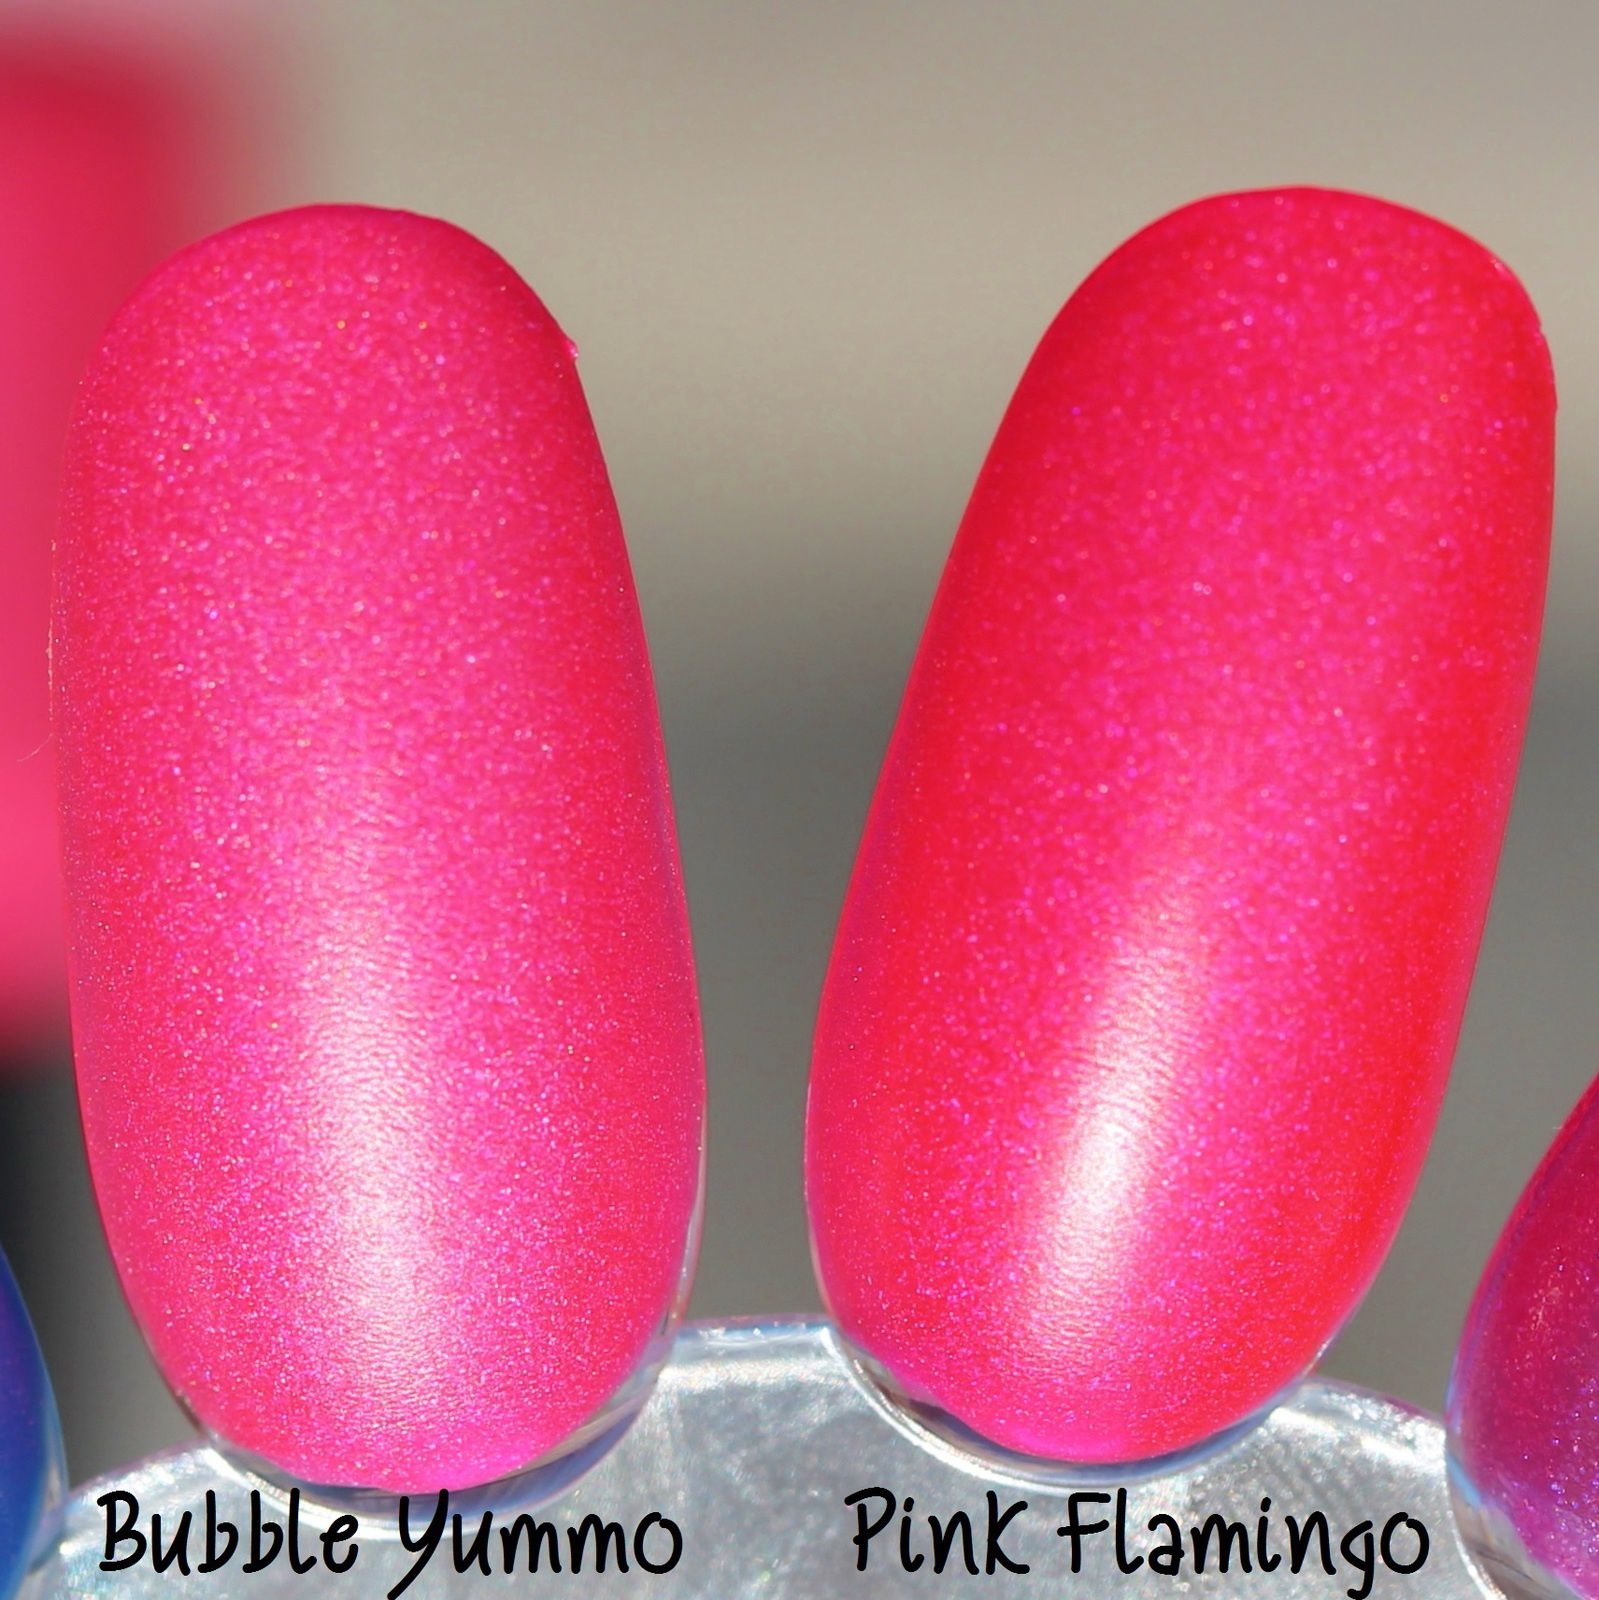 Lilypad Lacquer Bubble Yummo (left) and Lilypad Lacquer Pink Flamingo (right)